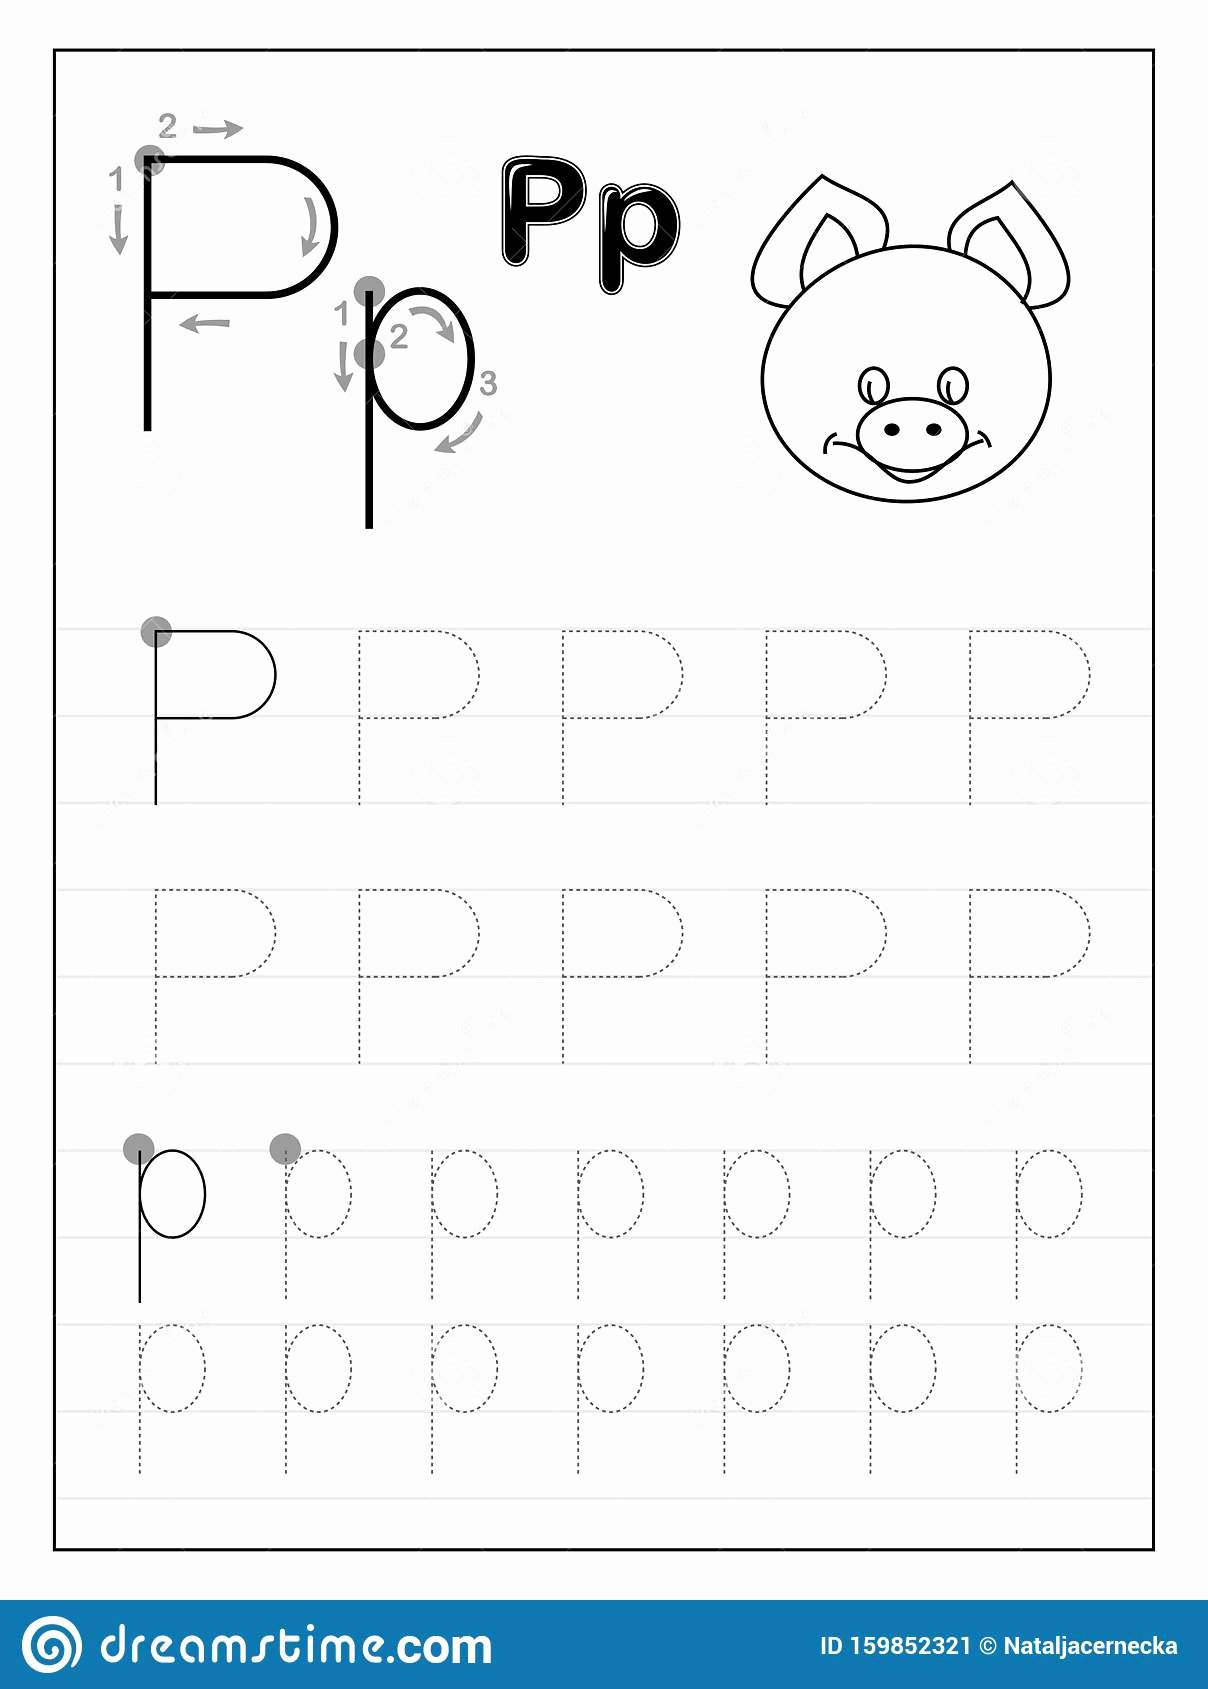 Free Printable Letter P Worksheets top Tracing Alphabet Letter P Black and White Educational Pages